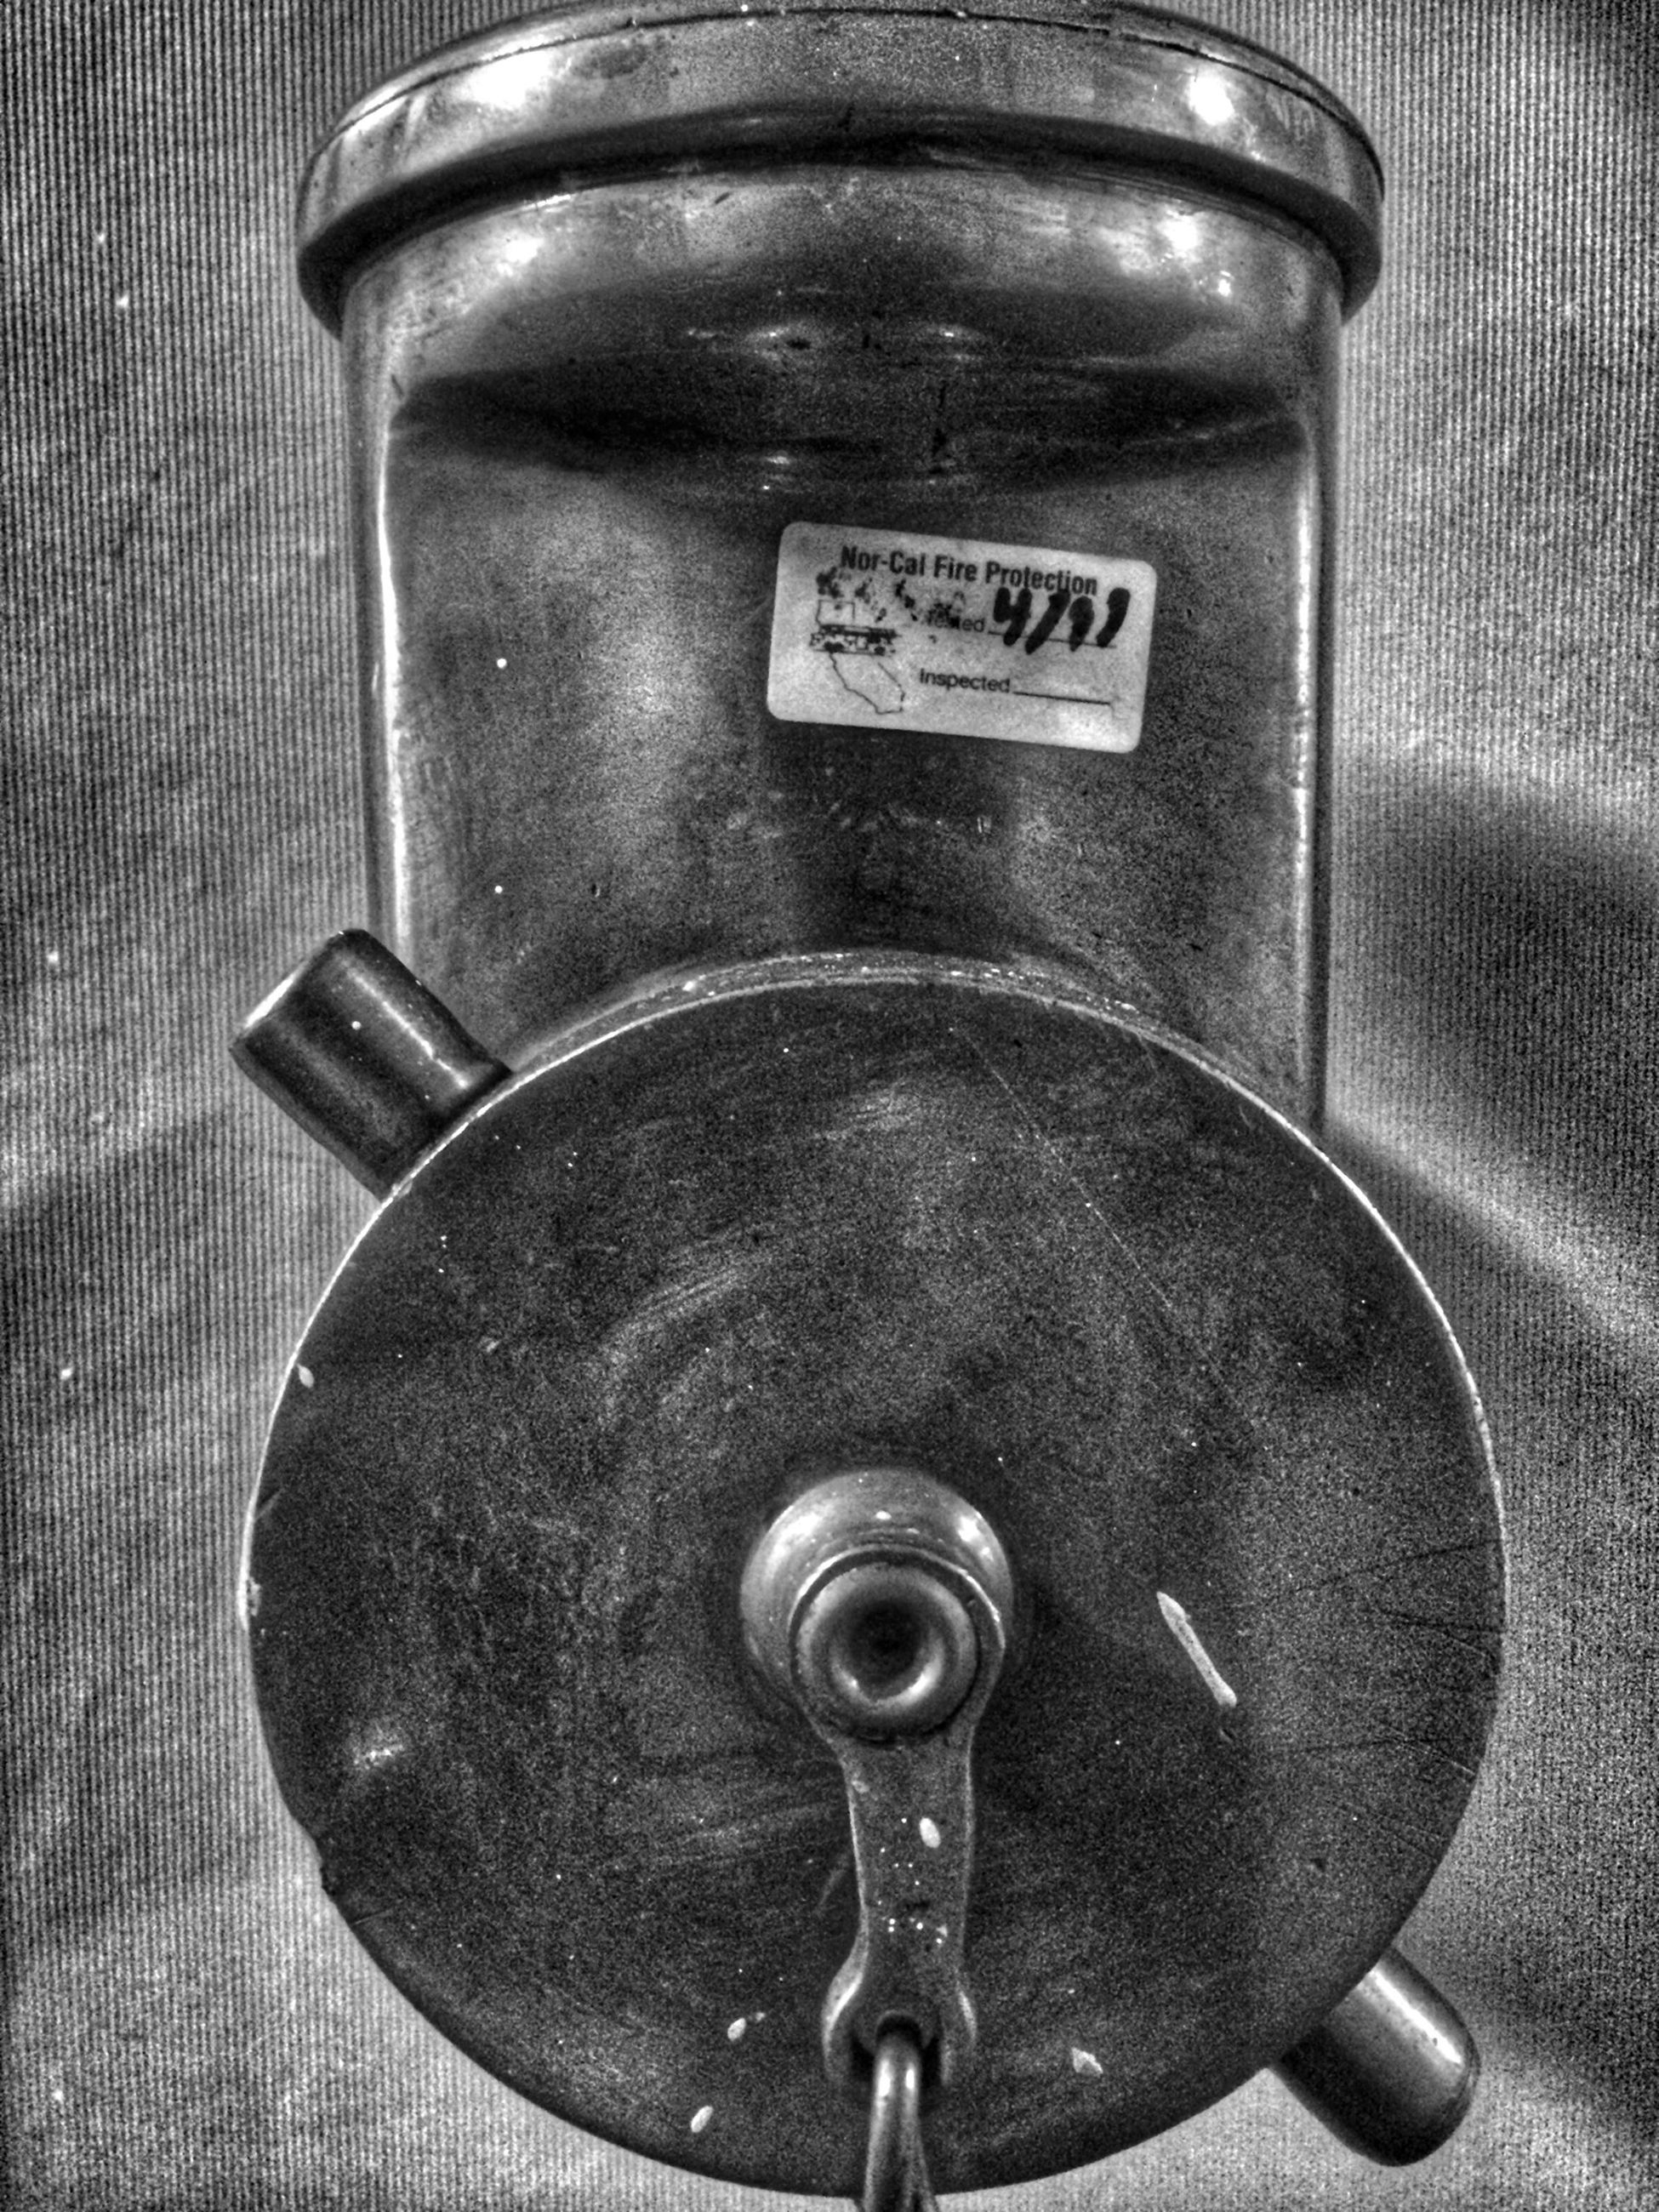 indoors, metal, close-up, metallic, still life, technology, communication, old-fashioned, old, no people, high angle view, number, antique, retro styled, connection, equipment, wall - building feature, text, handle, man made object